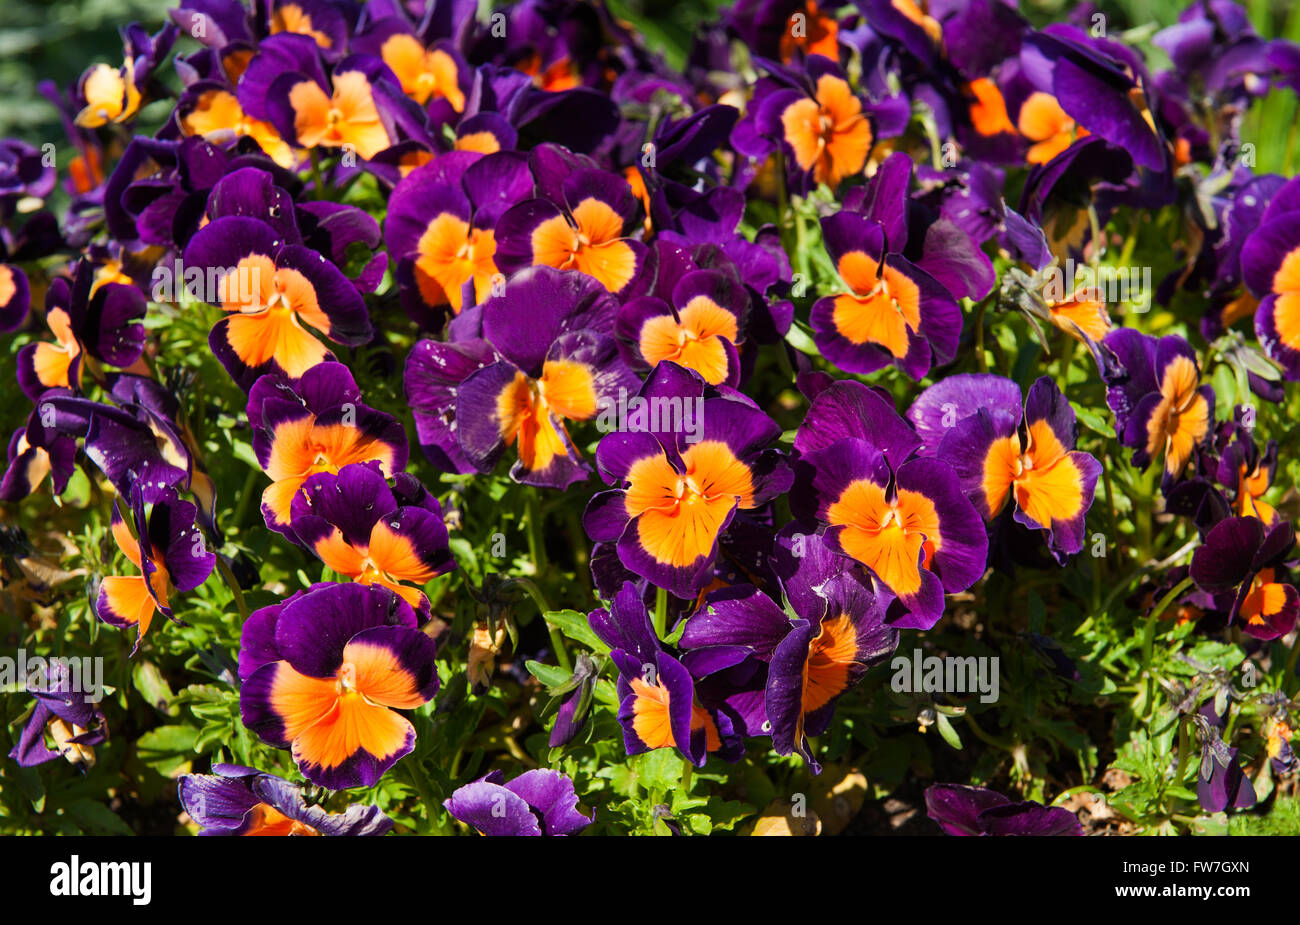 Yellow viola flowers in garden stock photos yellow viola flowers pink and orange flowers in the garden latin name viola tricolor stock image mightylinksfo